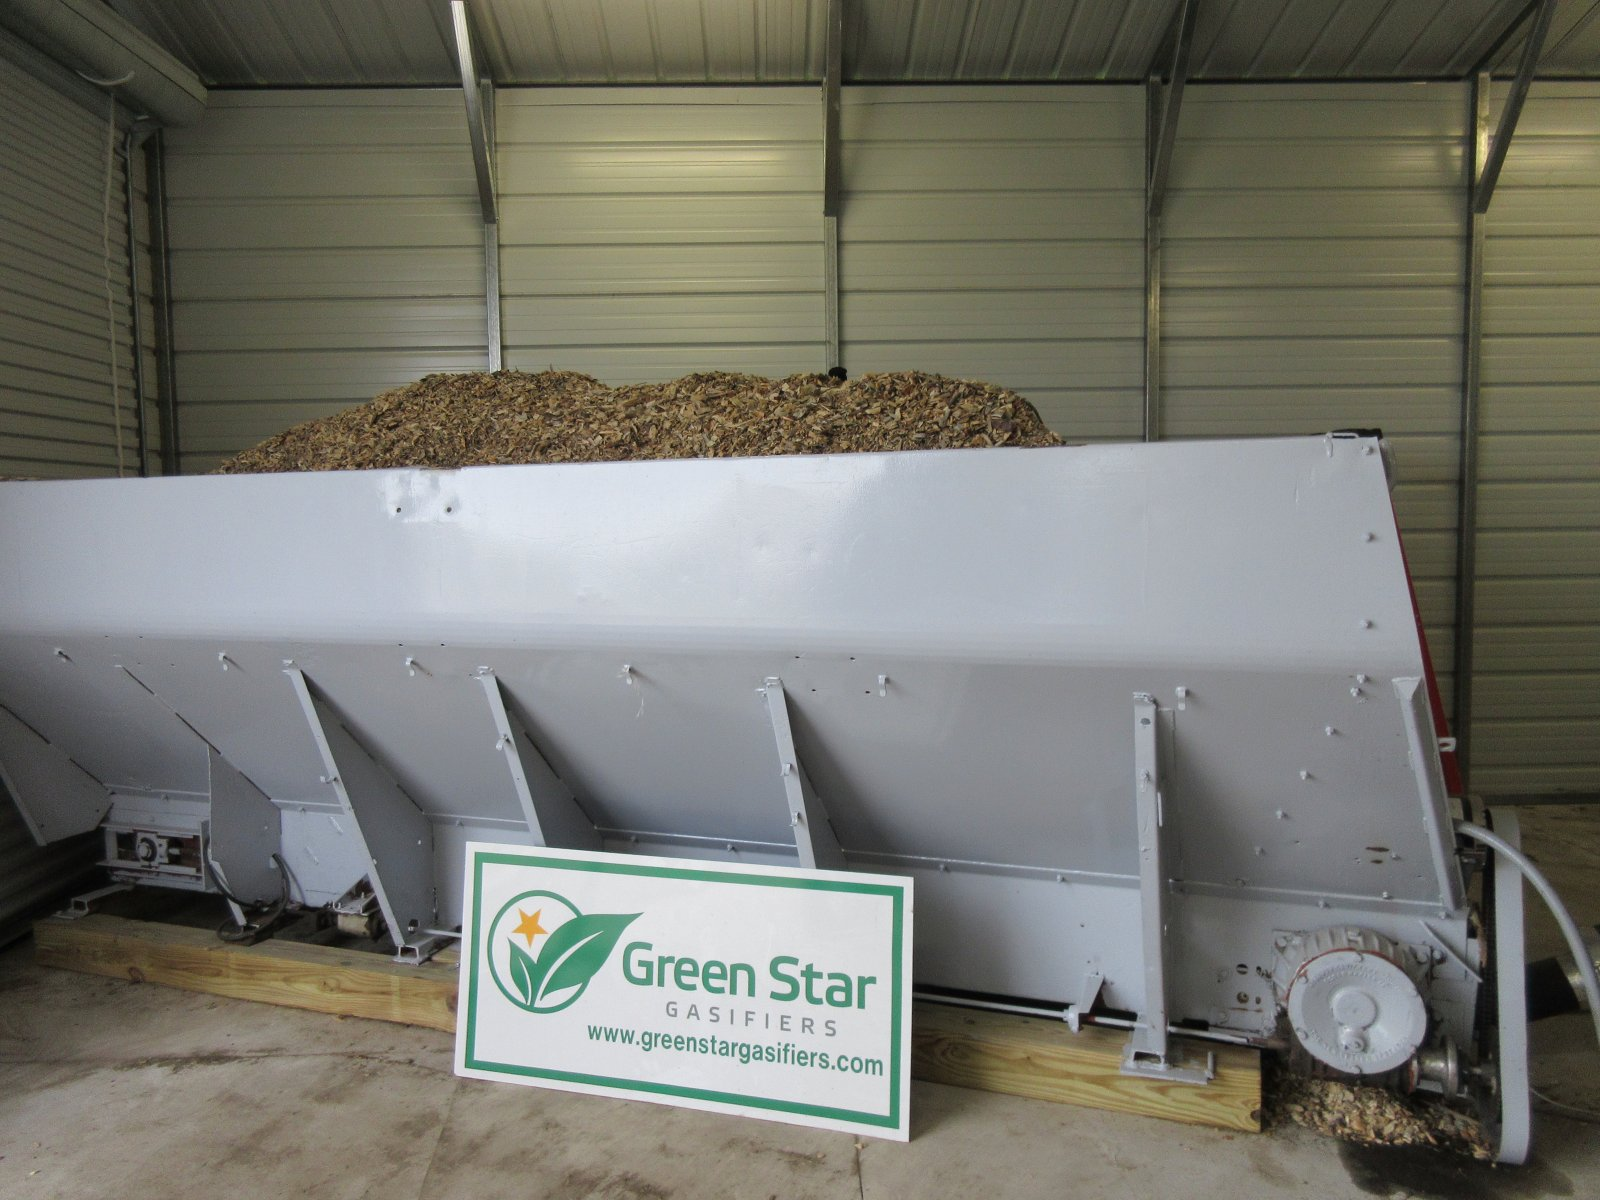 Wood chips are piled into machine that creates electricity.